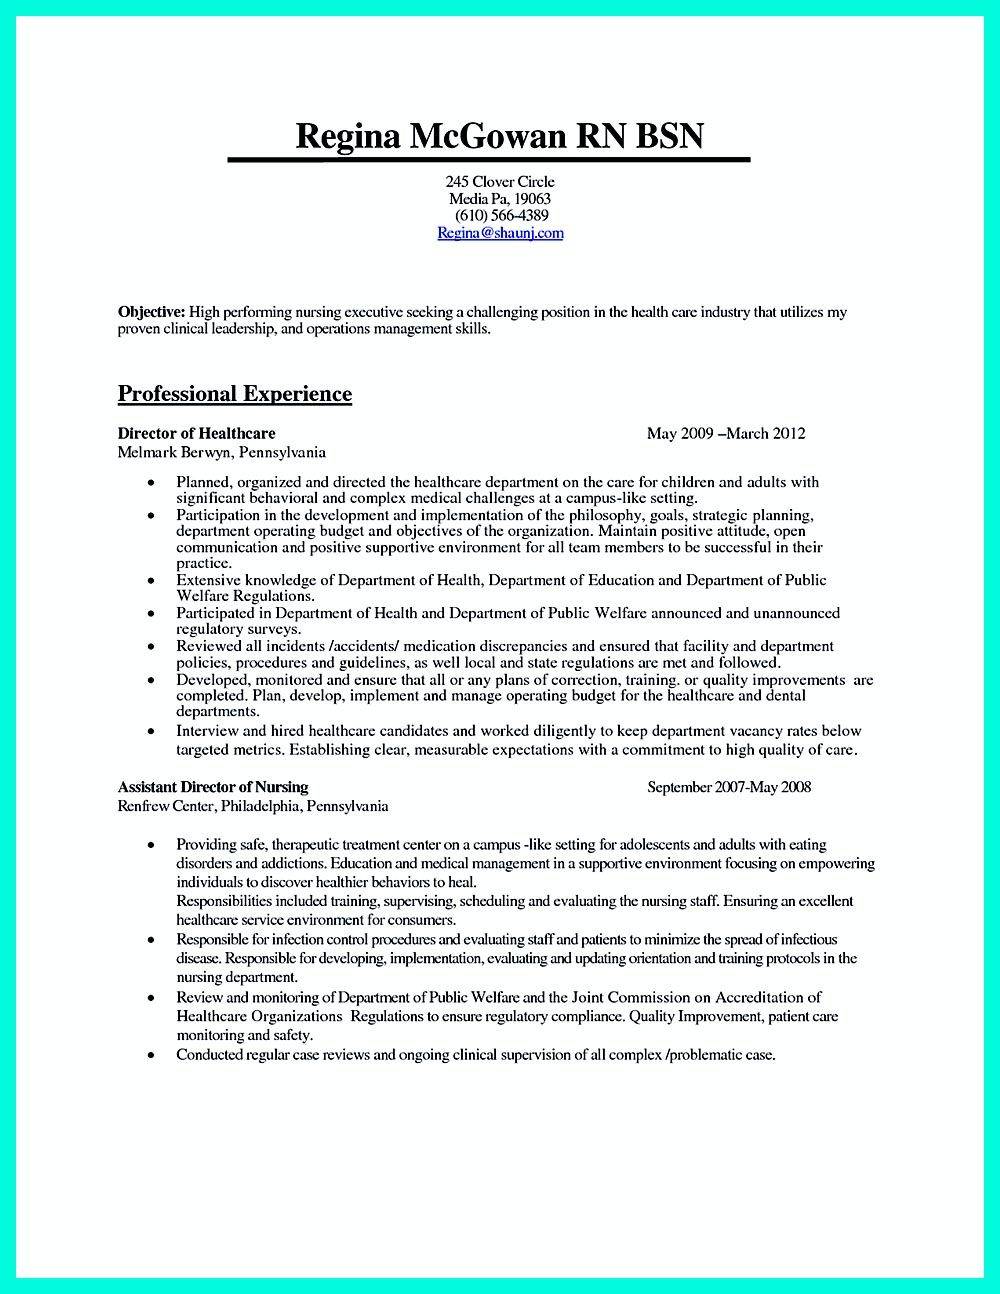 Nursing School Resume Template Some Samples Of Crna Resume Here Are Useful For You Who Want To